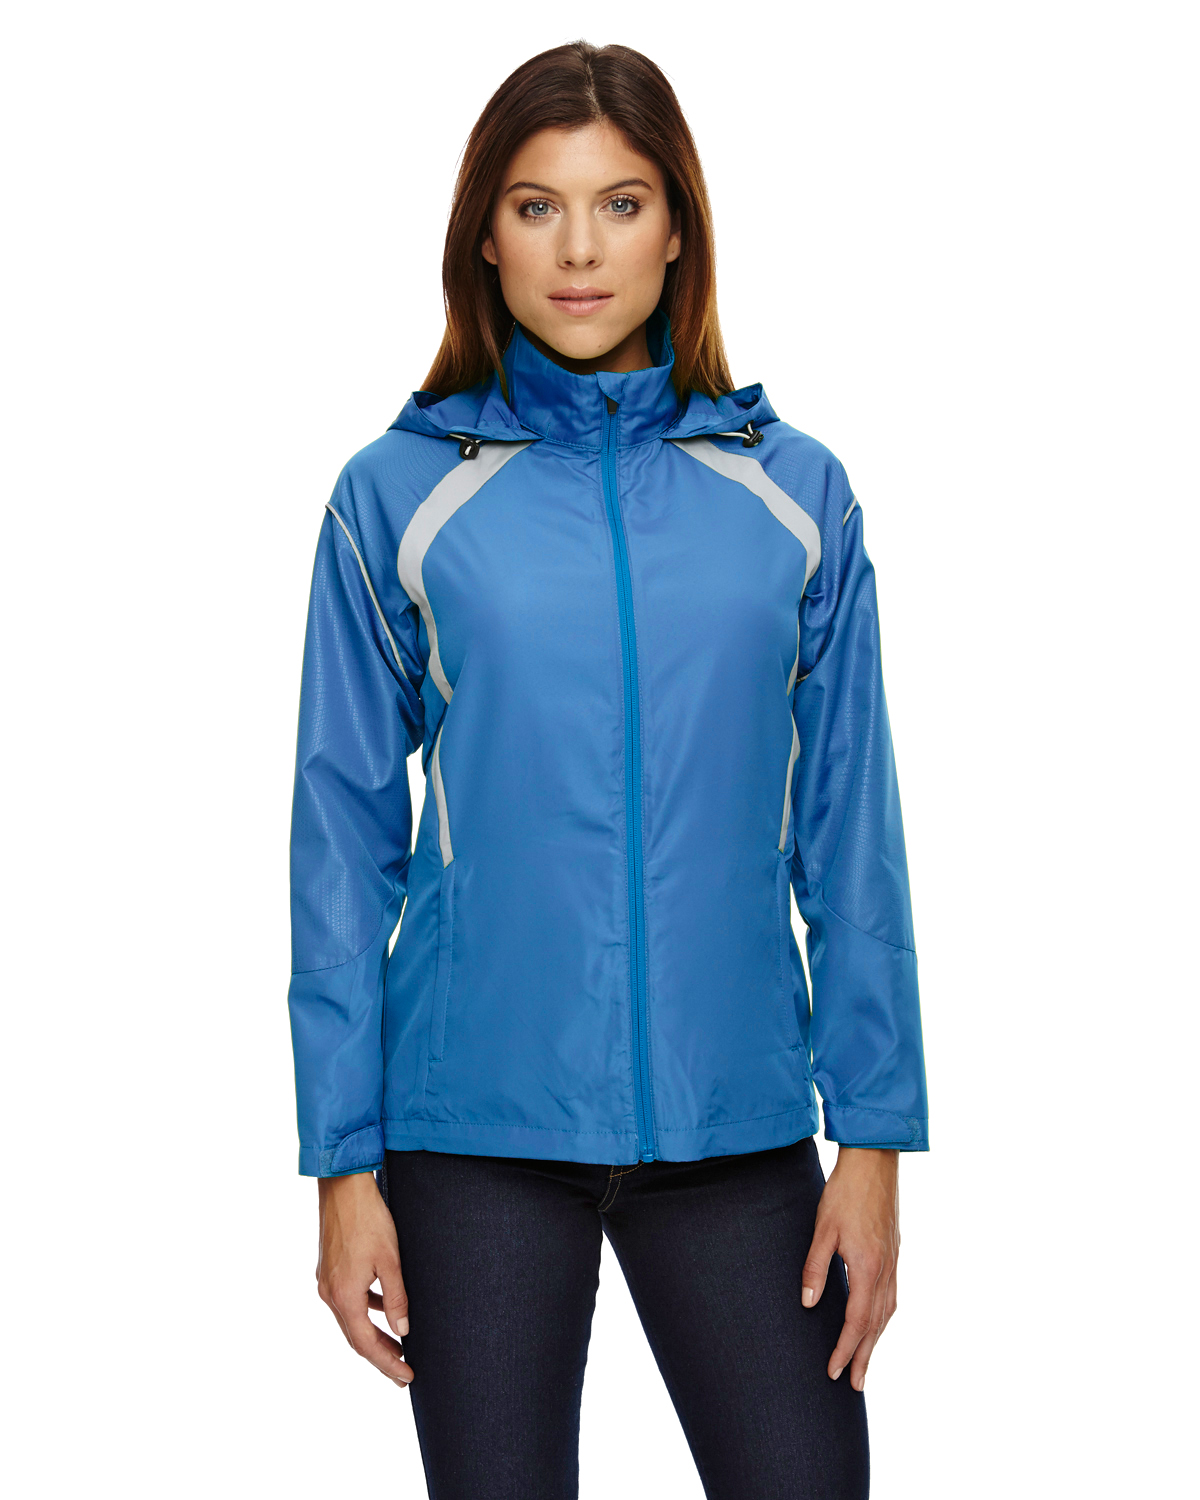 Ash City - 78168, Ladies' Sirius Lightweight Jacket with Embossed Print, Embroidery, Screen Printing - Logo Masters International